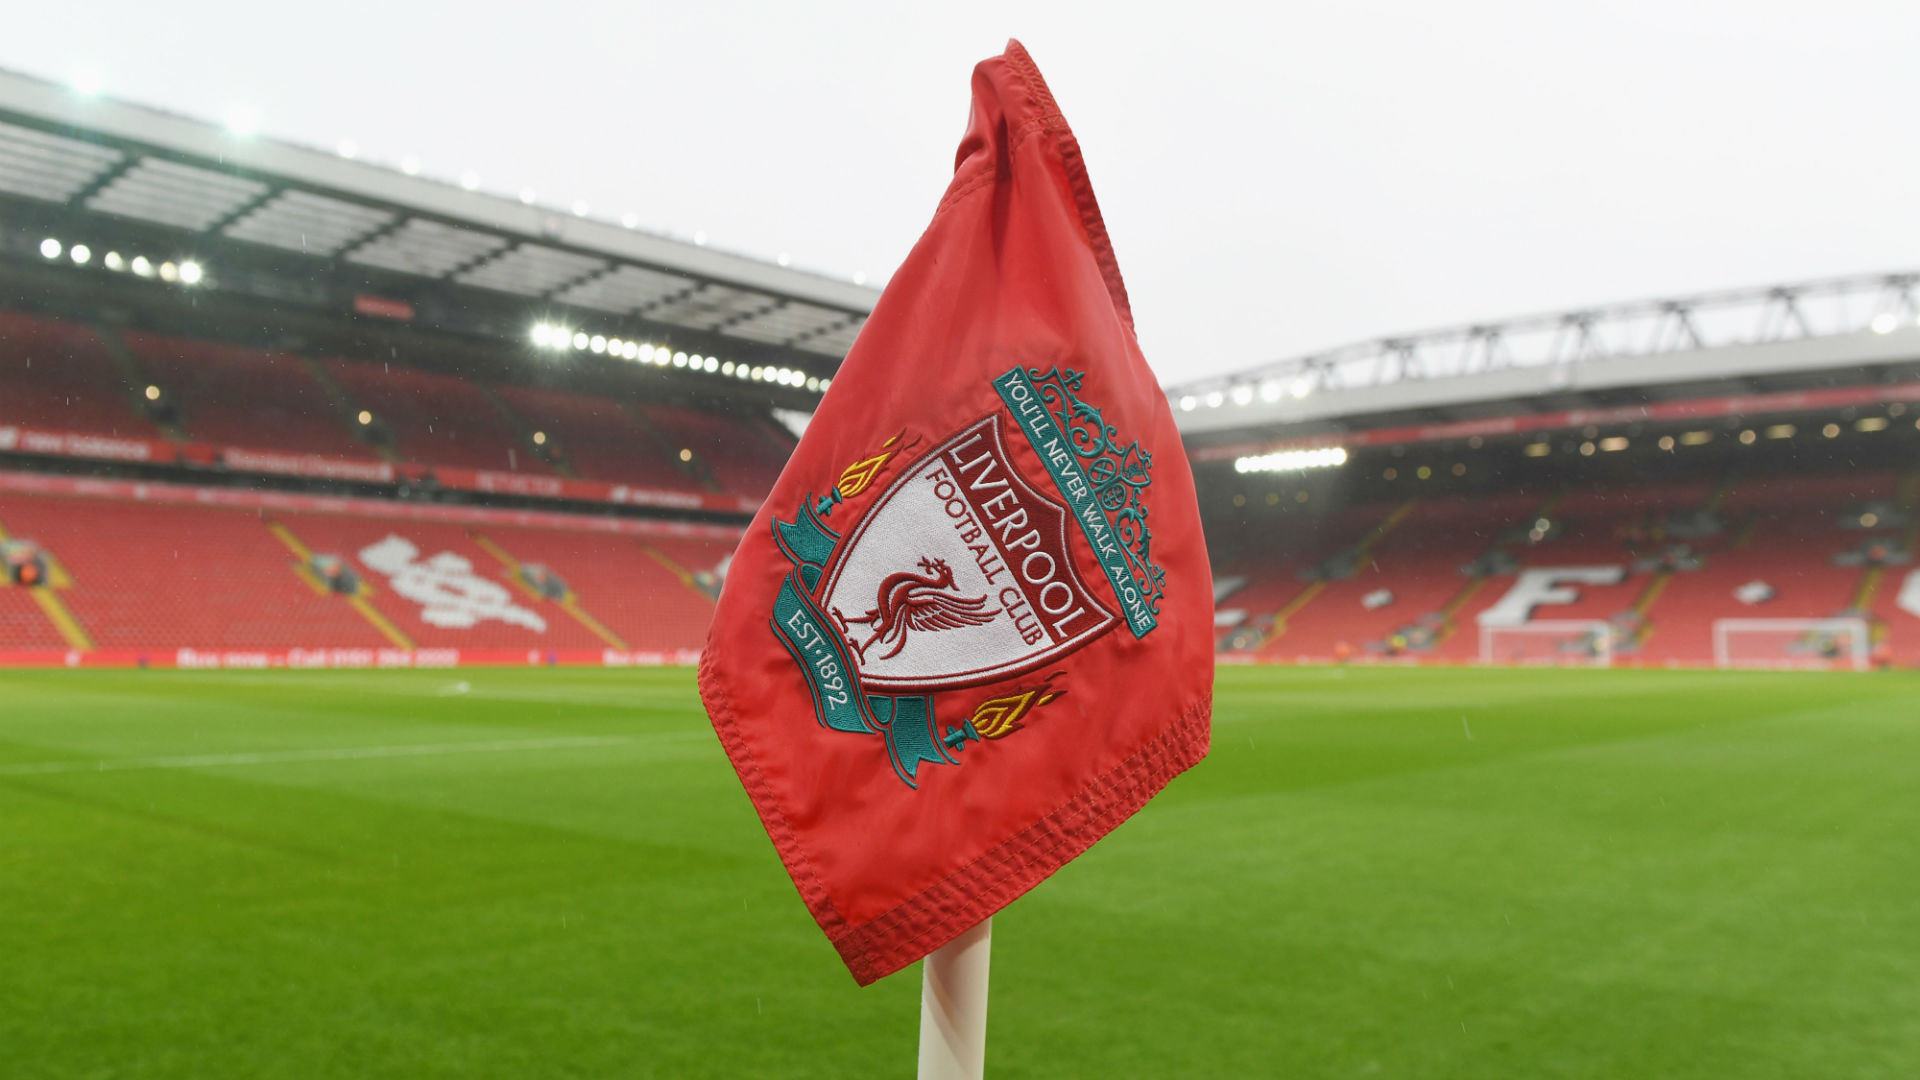 Liverpool FC 'not for sale' after Fenway Sports Group report